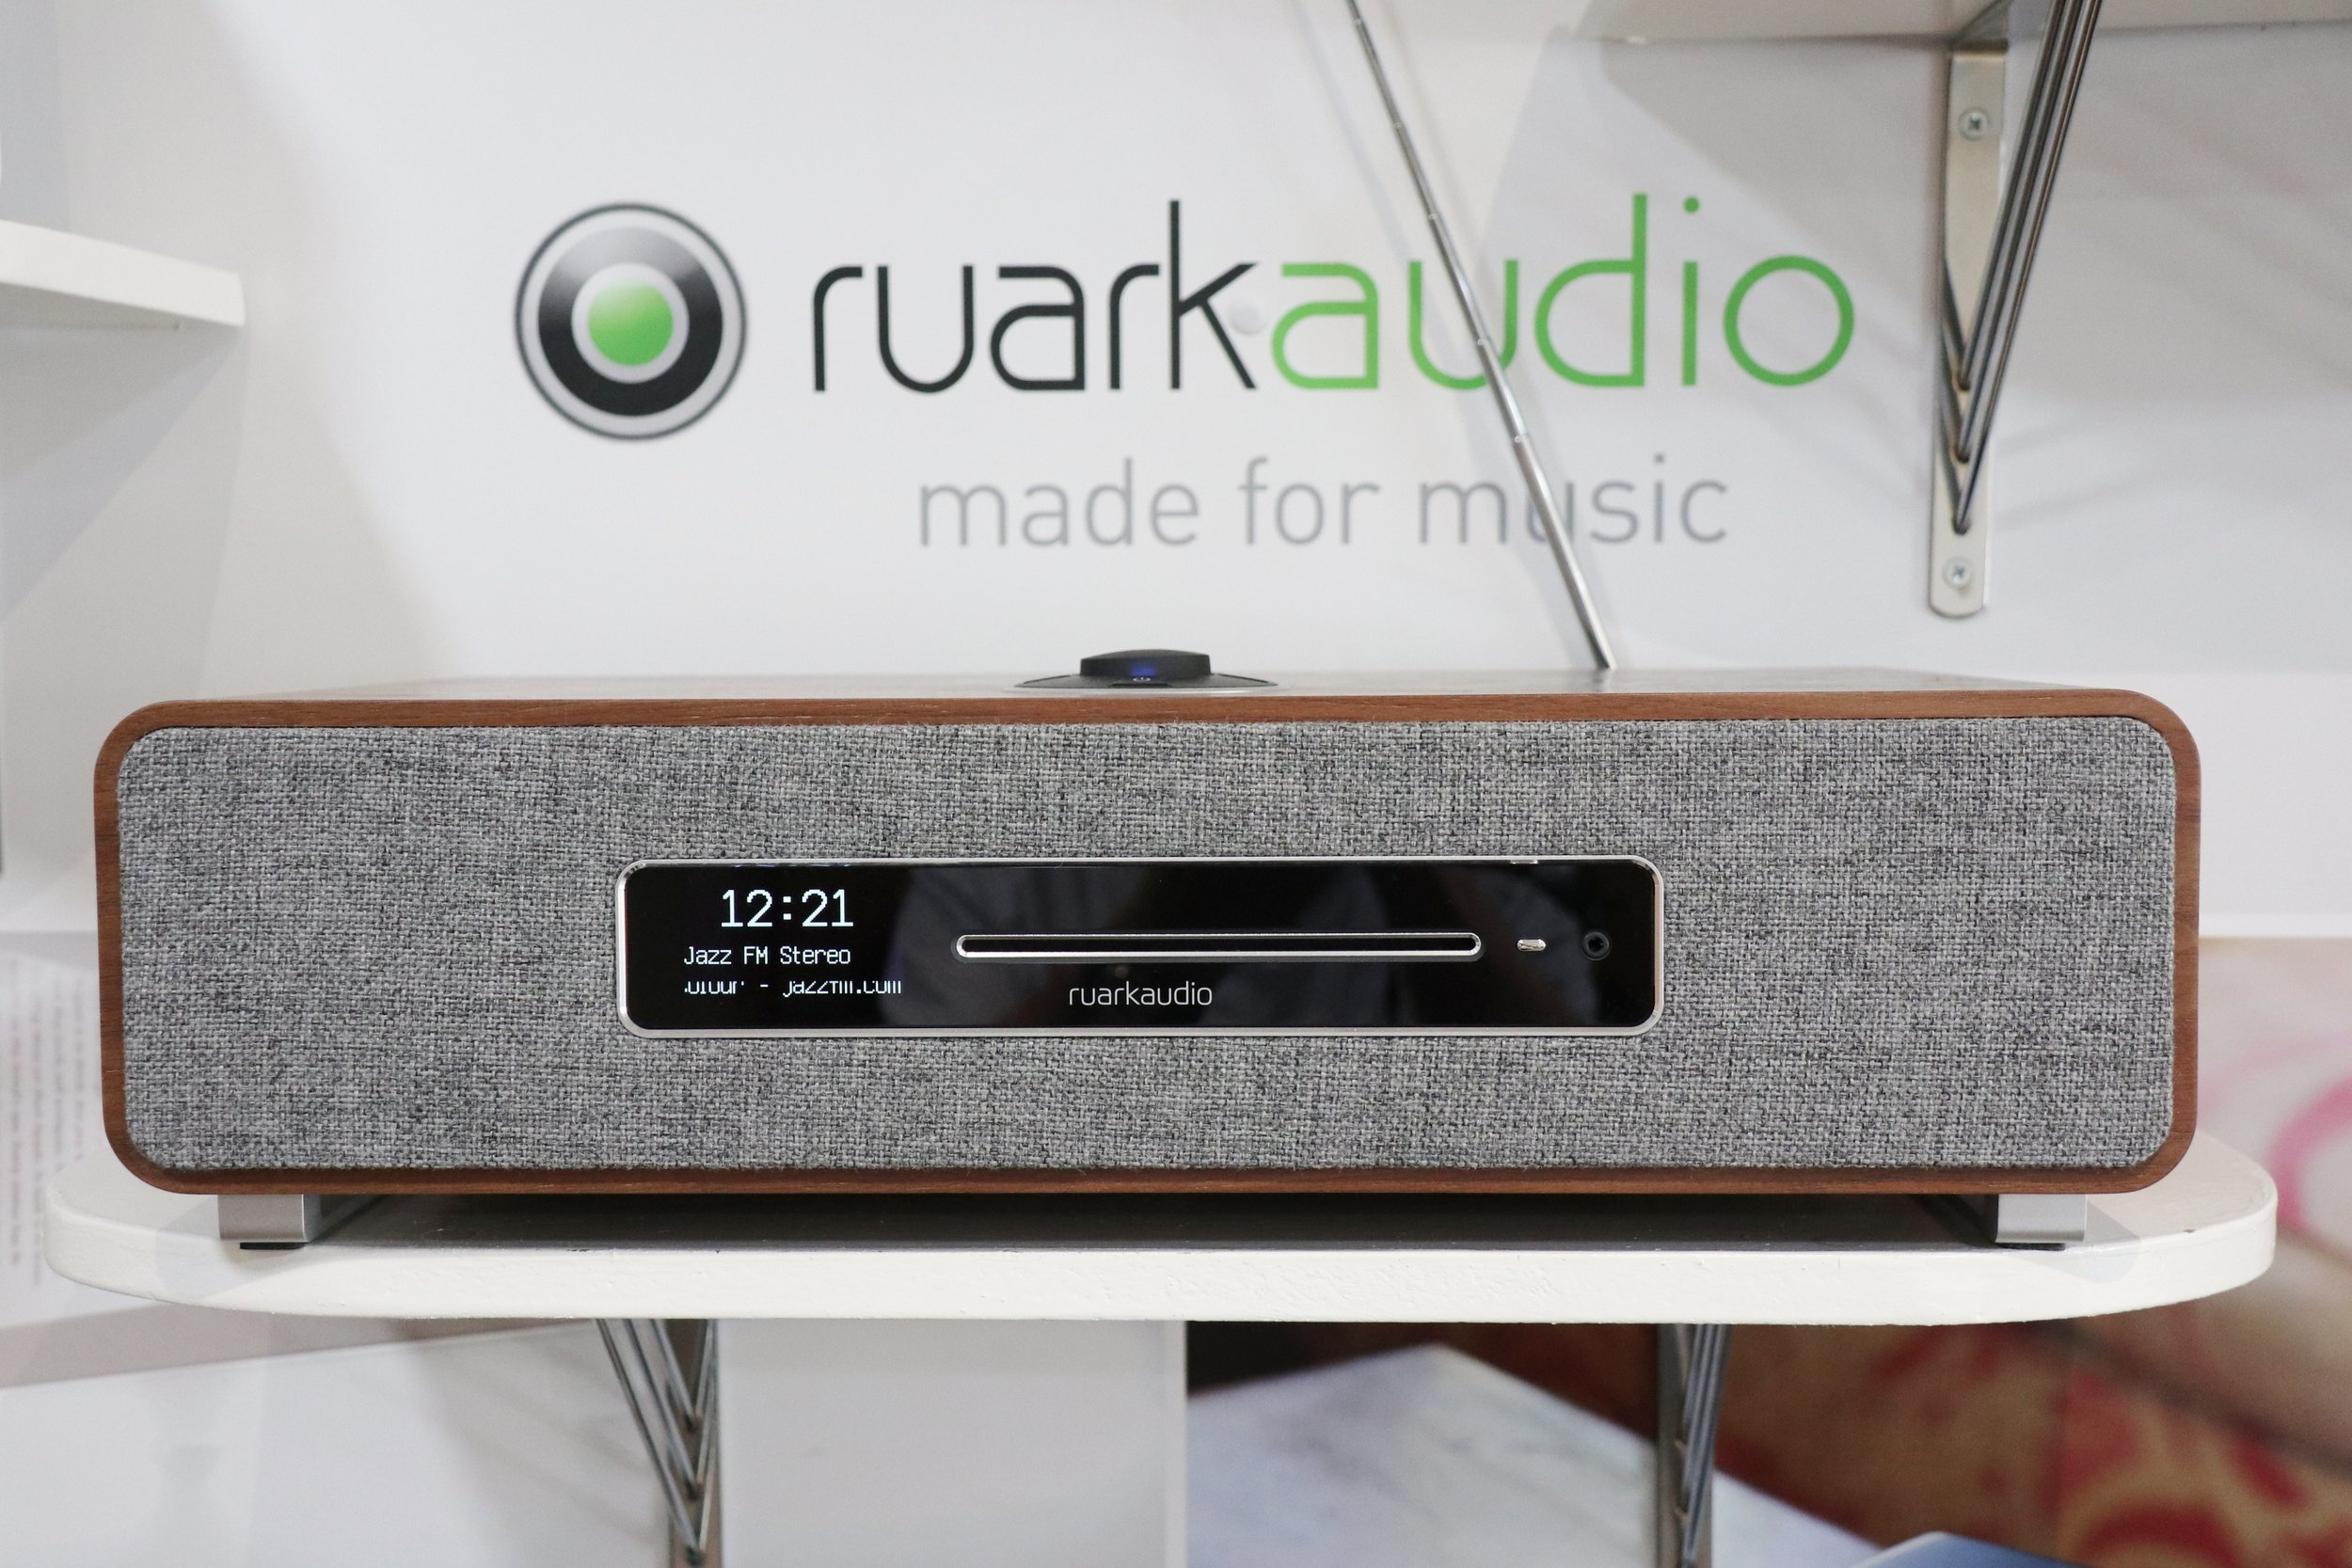 The wonderful walnut wood and lovely lush sound of the Ruark R5 is something to be experienced. The canvas front and minimalistic look give it a fantastic modern look that catches the eye and is backed up with a very solid sound.